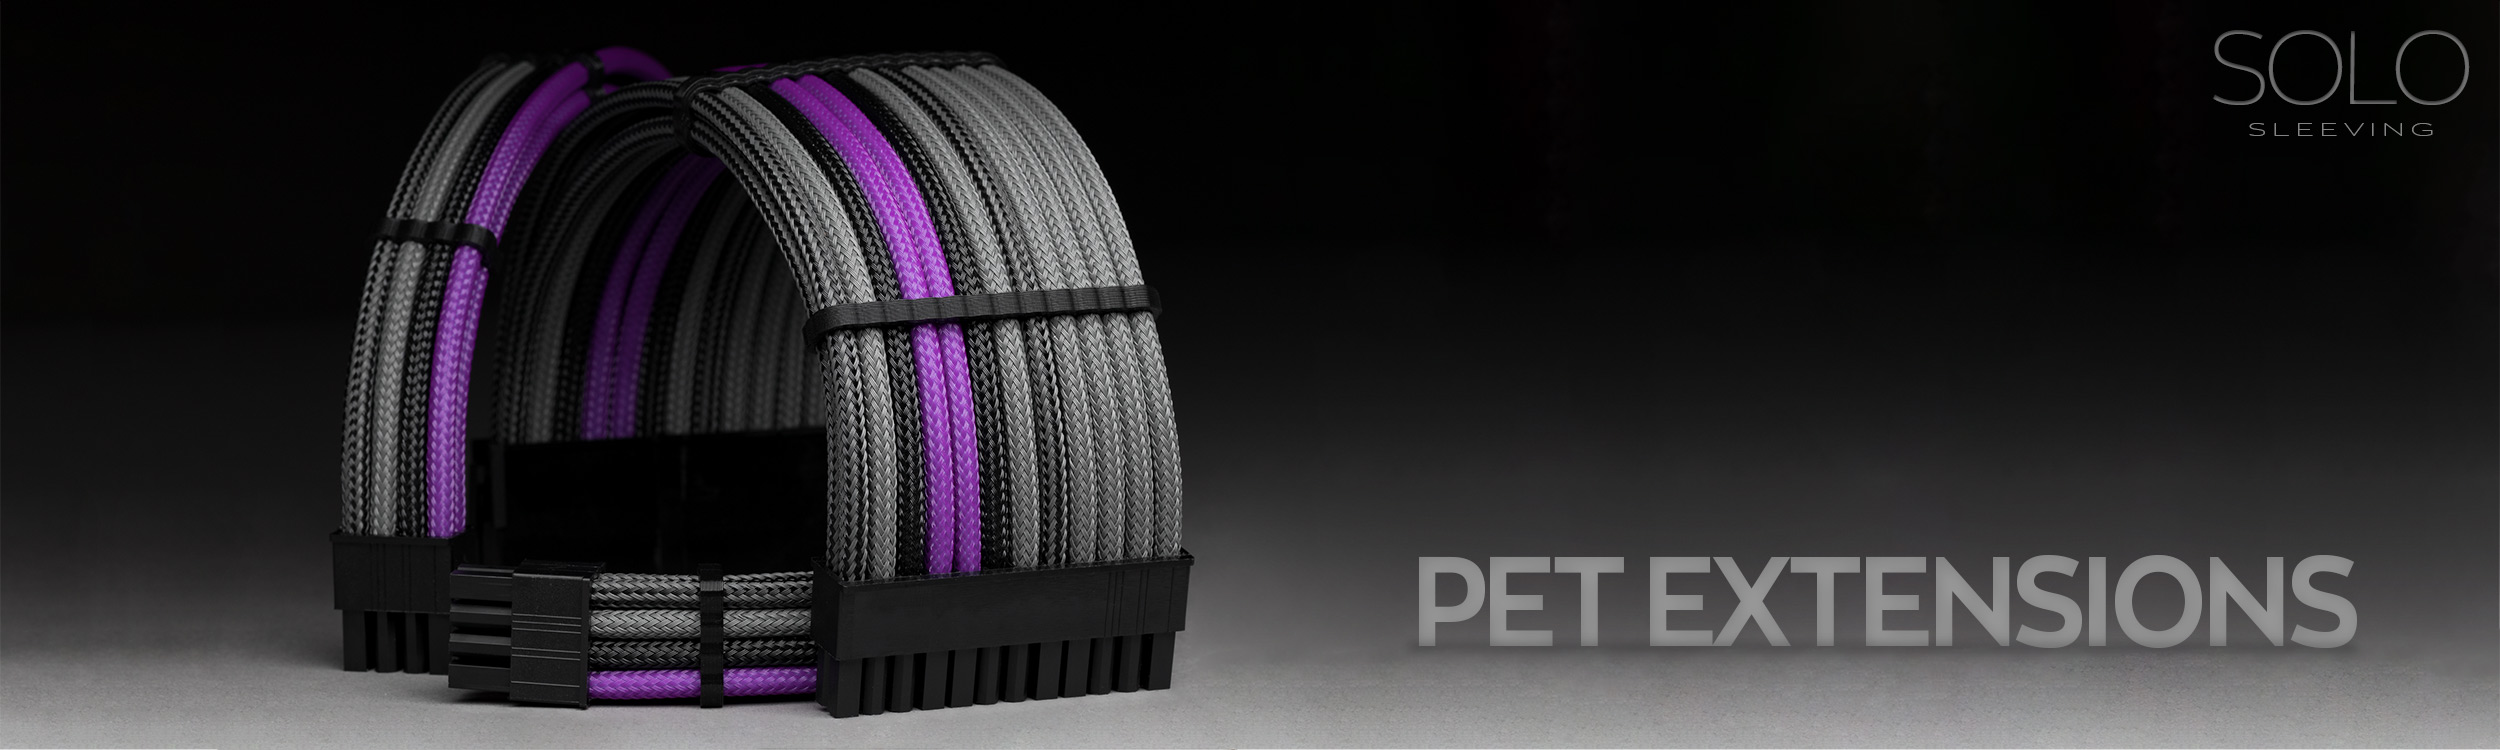 Design your own PET sleeved extension cables. Custom colors and lengths.